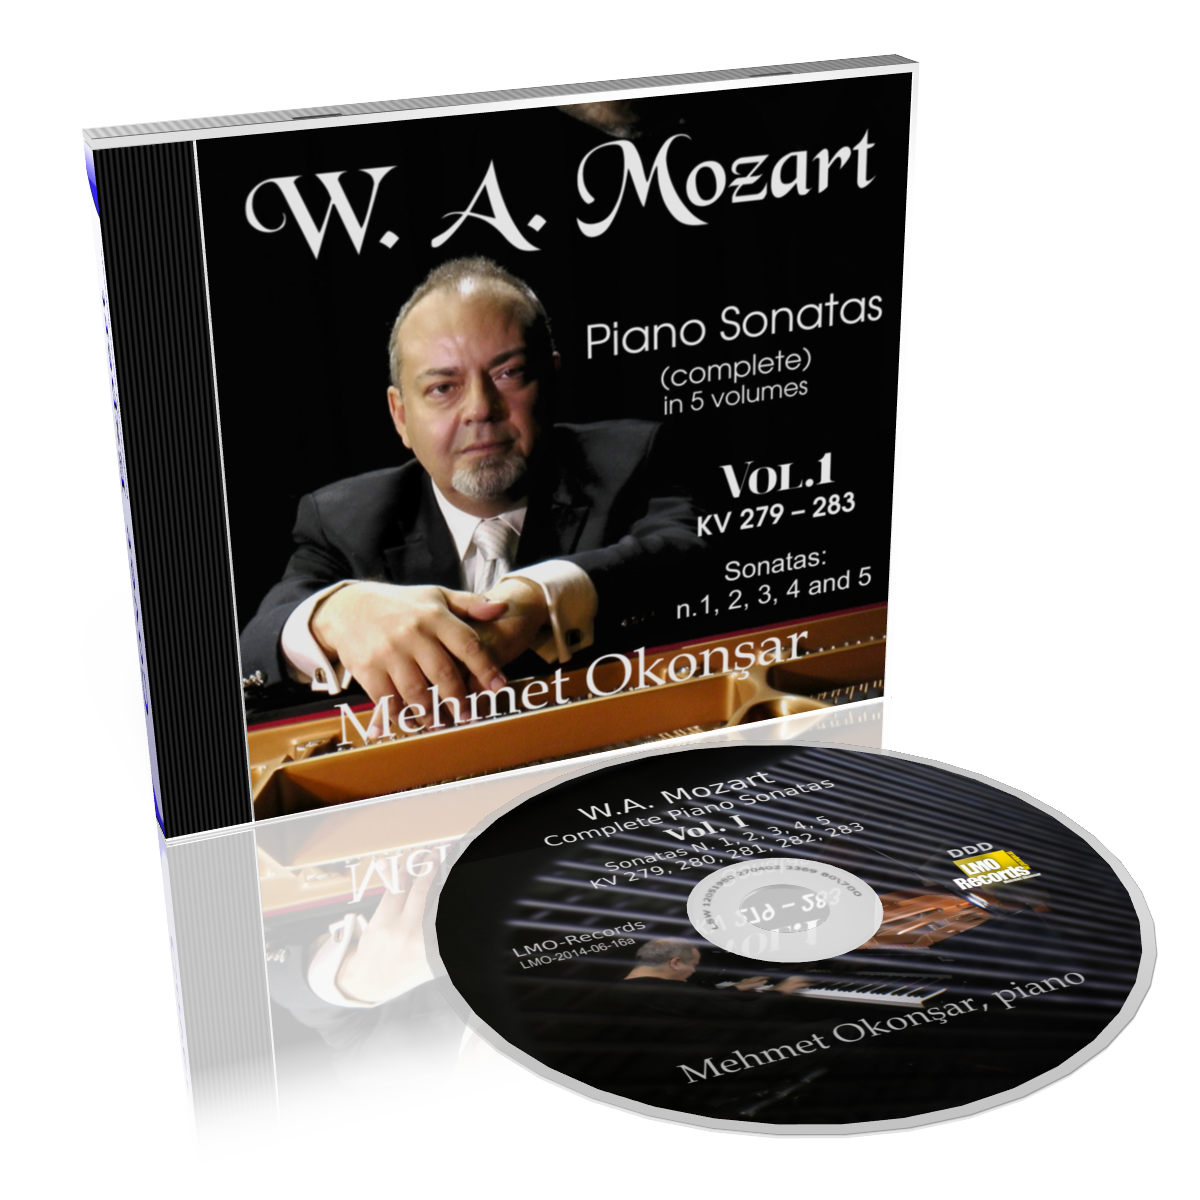 CDCovers/16-Mozart-VOL-1_1CD_productImage1.png